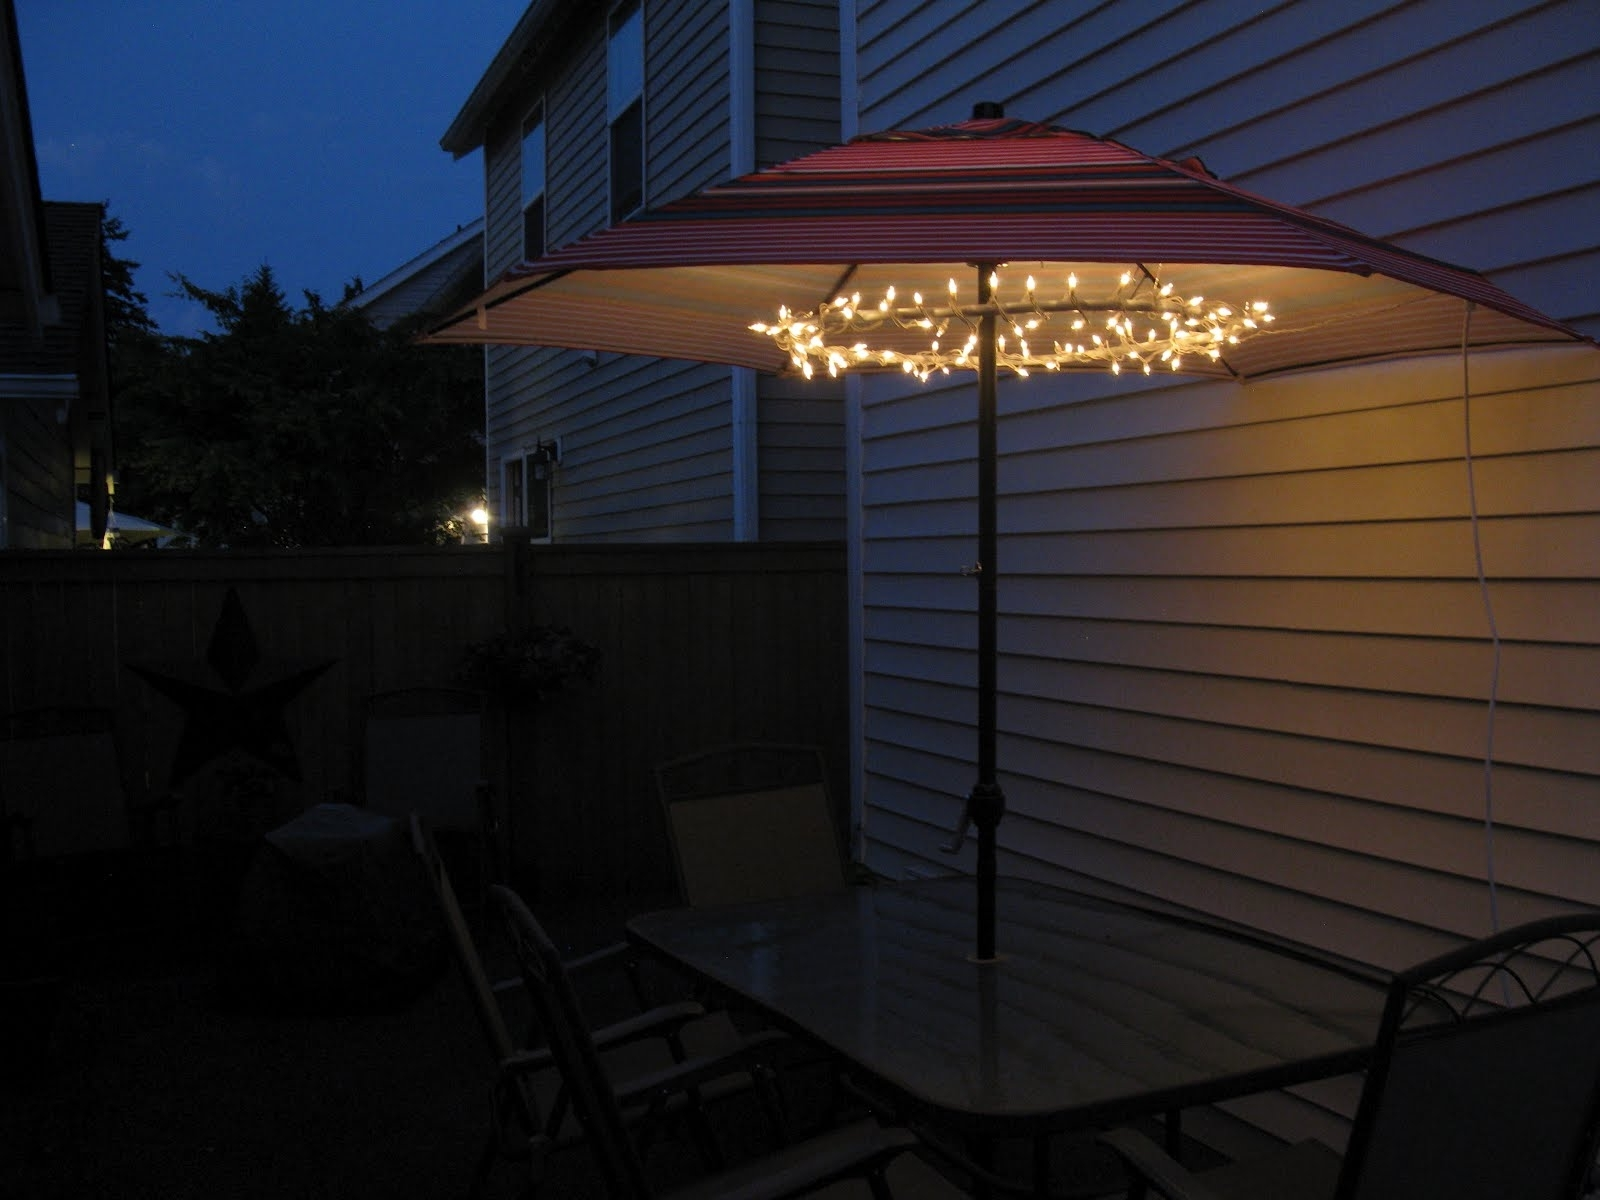 2019 Amazing Patio Umbrella Lights — Wilson Home Ideas : Beautiful Patio Inside Patio Umbrellas With Solar Lights (View 1 of 20)